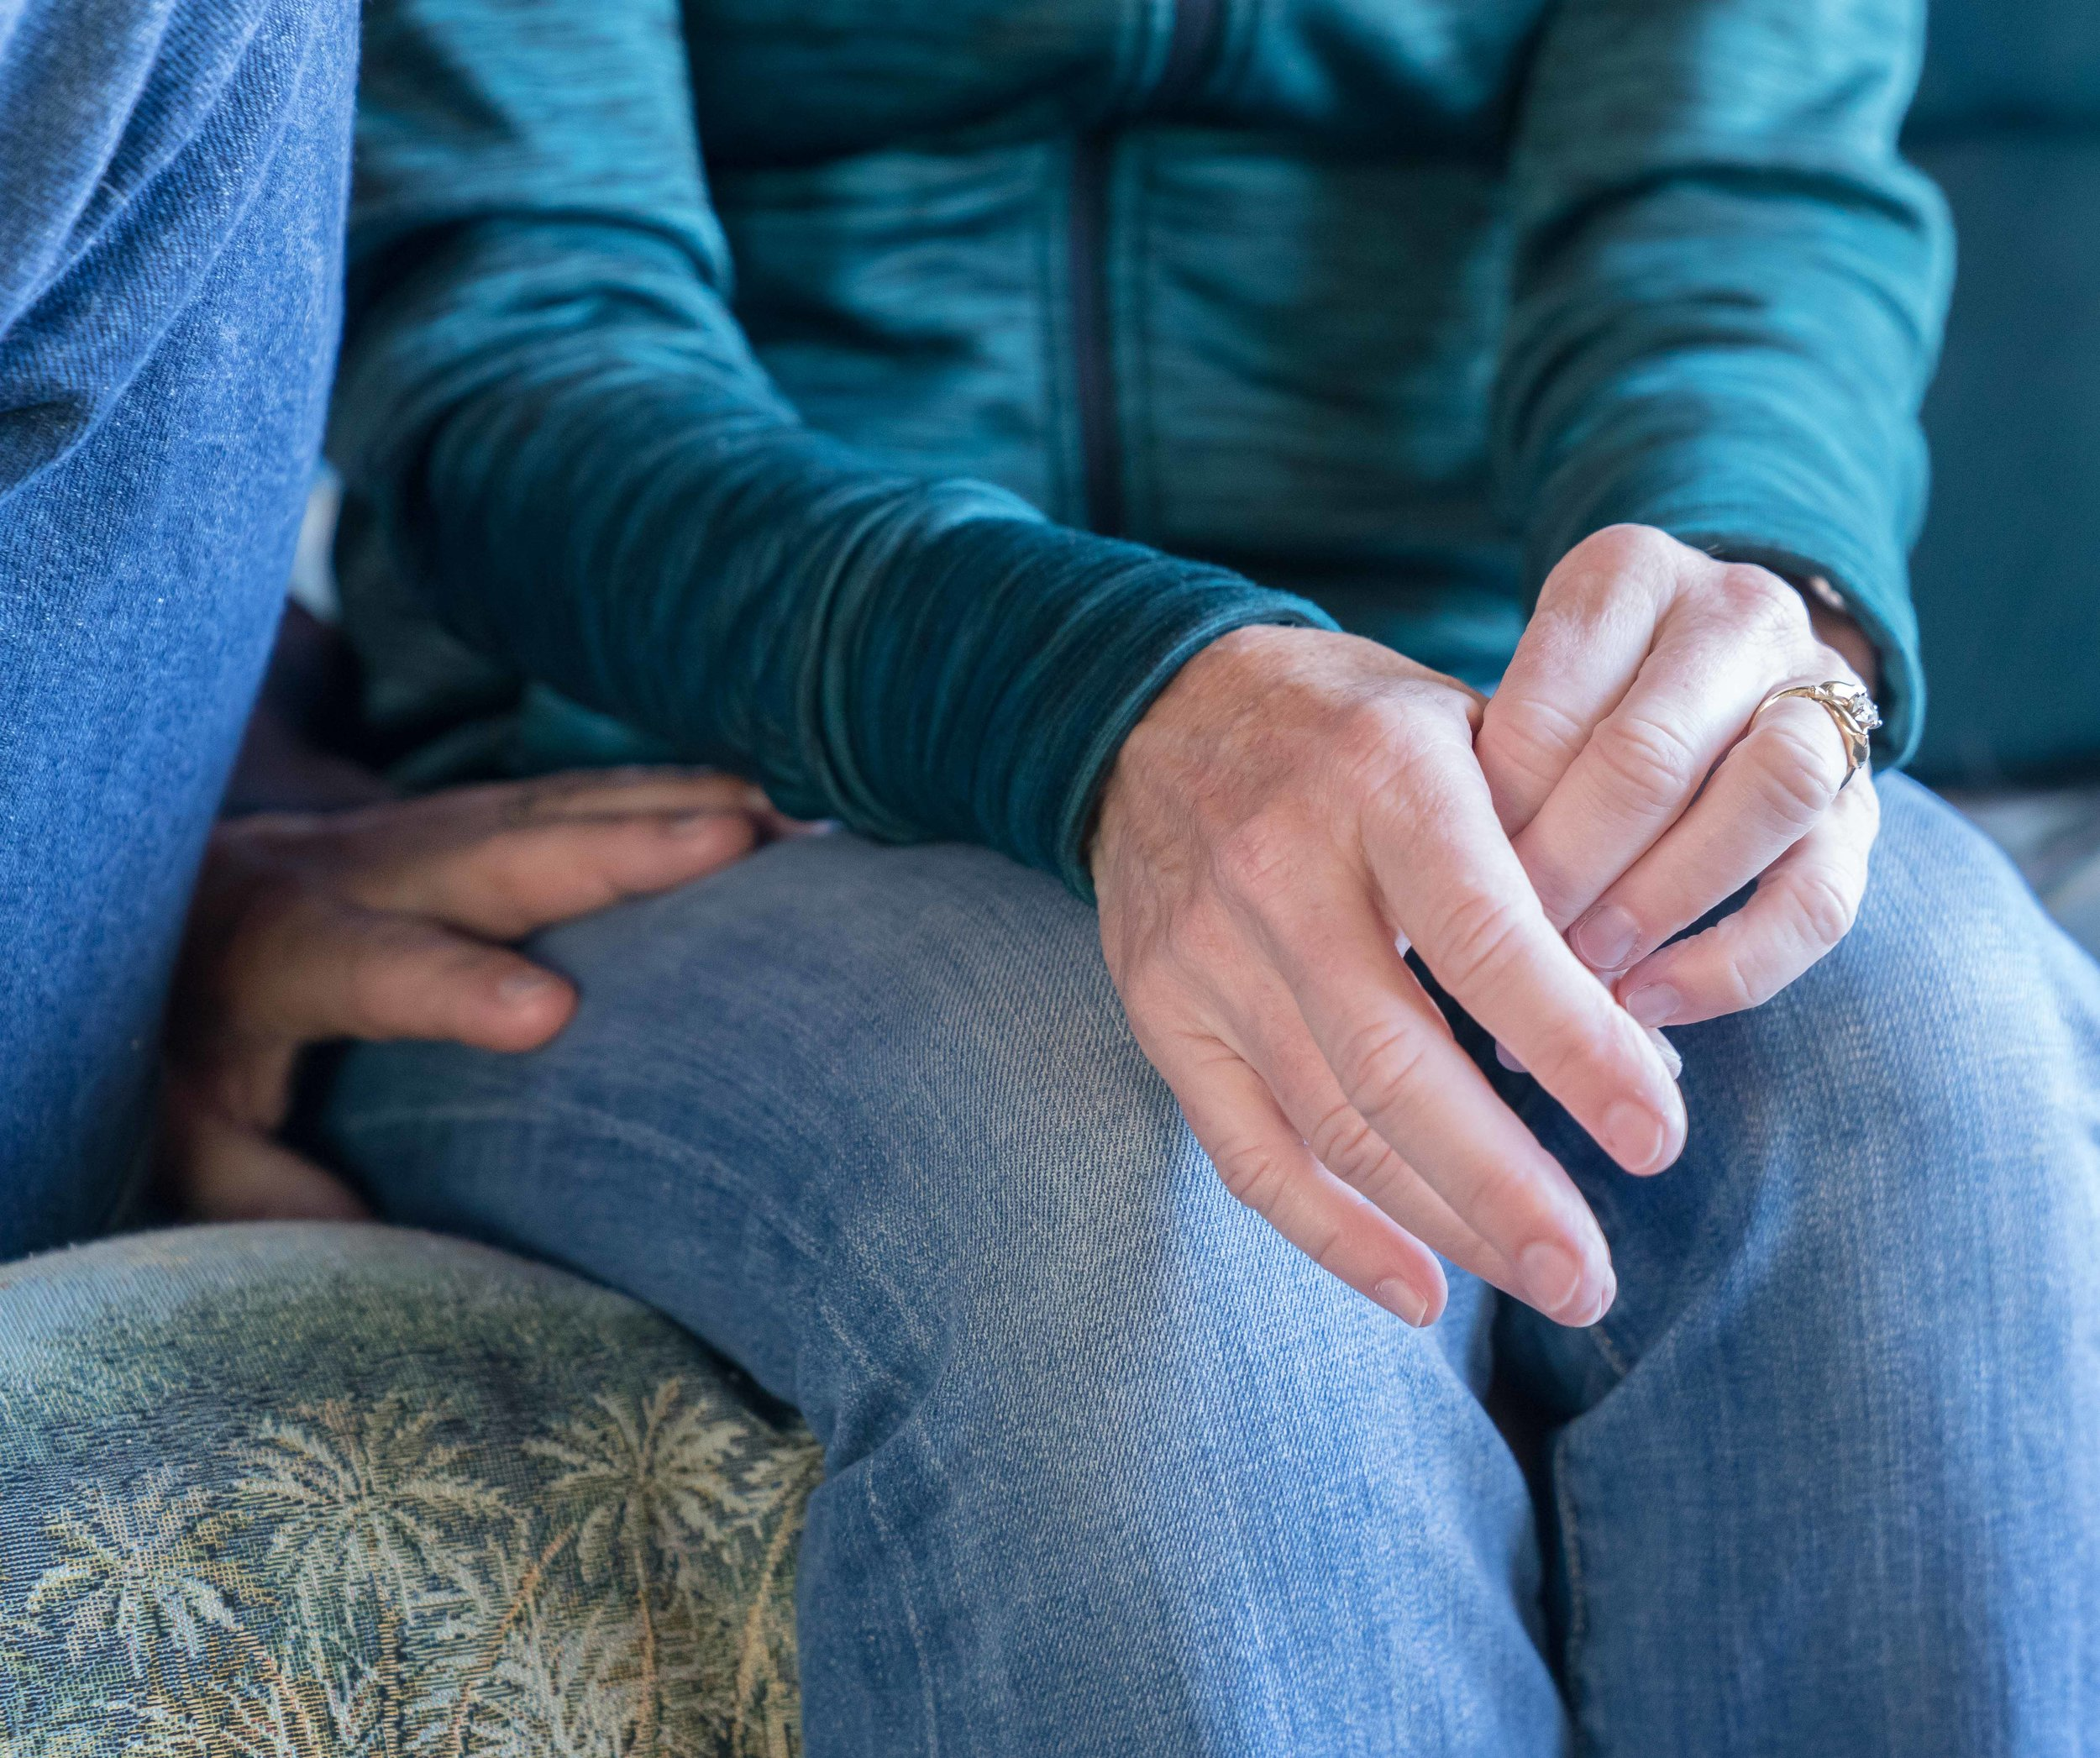 A detail of Kathy Welch's hands as she talks to a reporter in her home in Hermosa Beach, California on Saturday, March 17, 2018 about the death of her son, David Sliff. Welch's husband, Tom Welch, who was Sliff's stepfather, places his hand on his wife's leg. (Helena Sung/Corsair Photo)